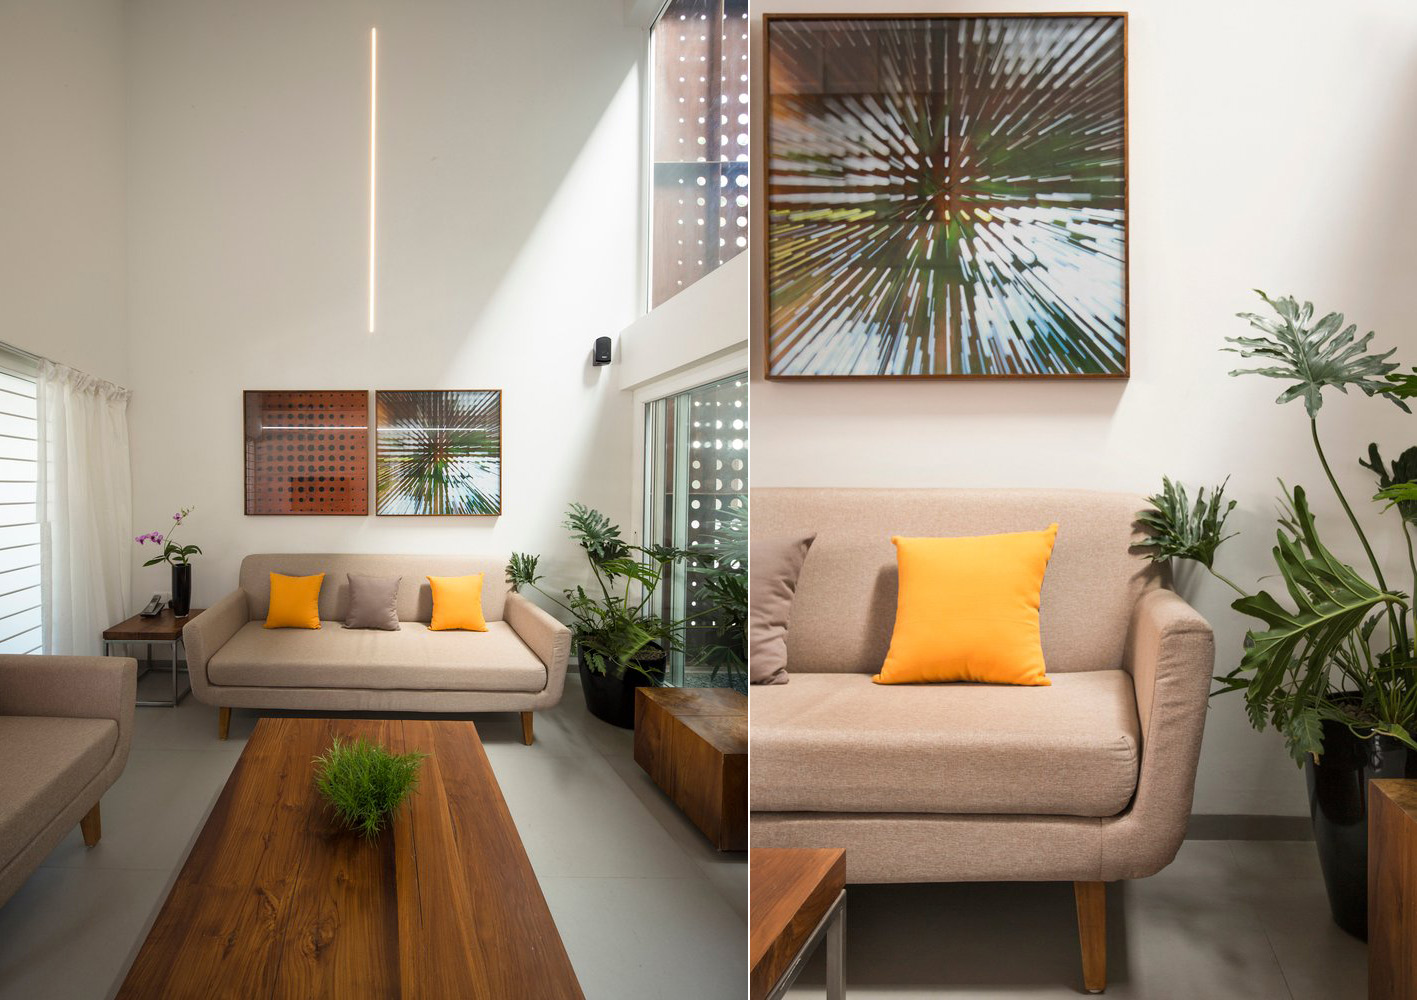 tropical living room colors tropical living room colors tropical living room colors: tropical living rooms